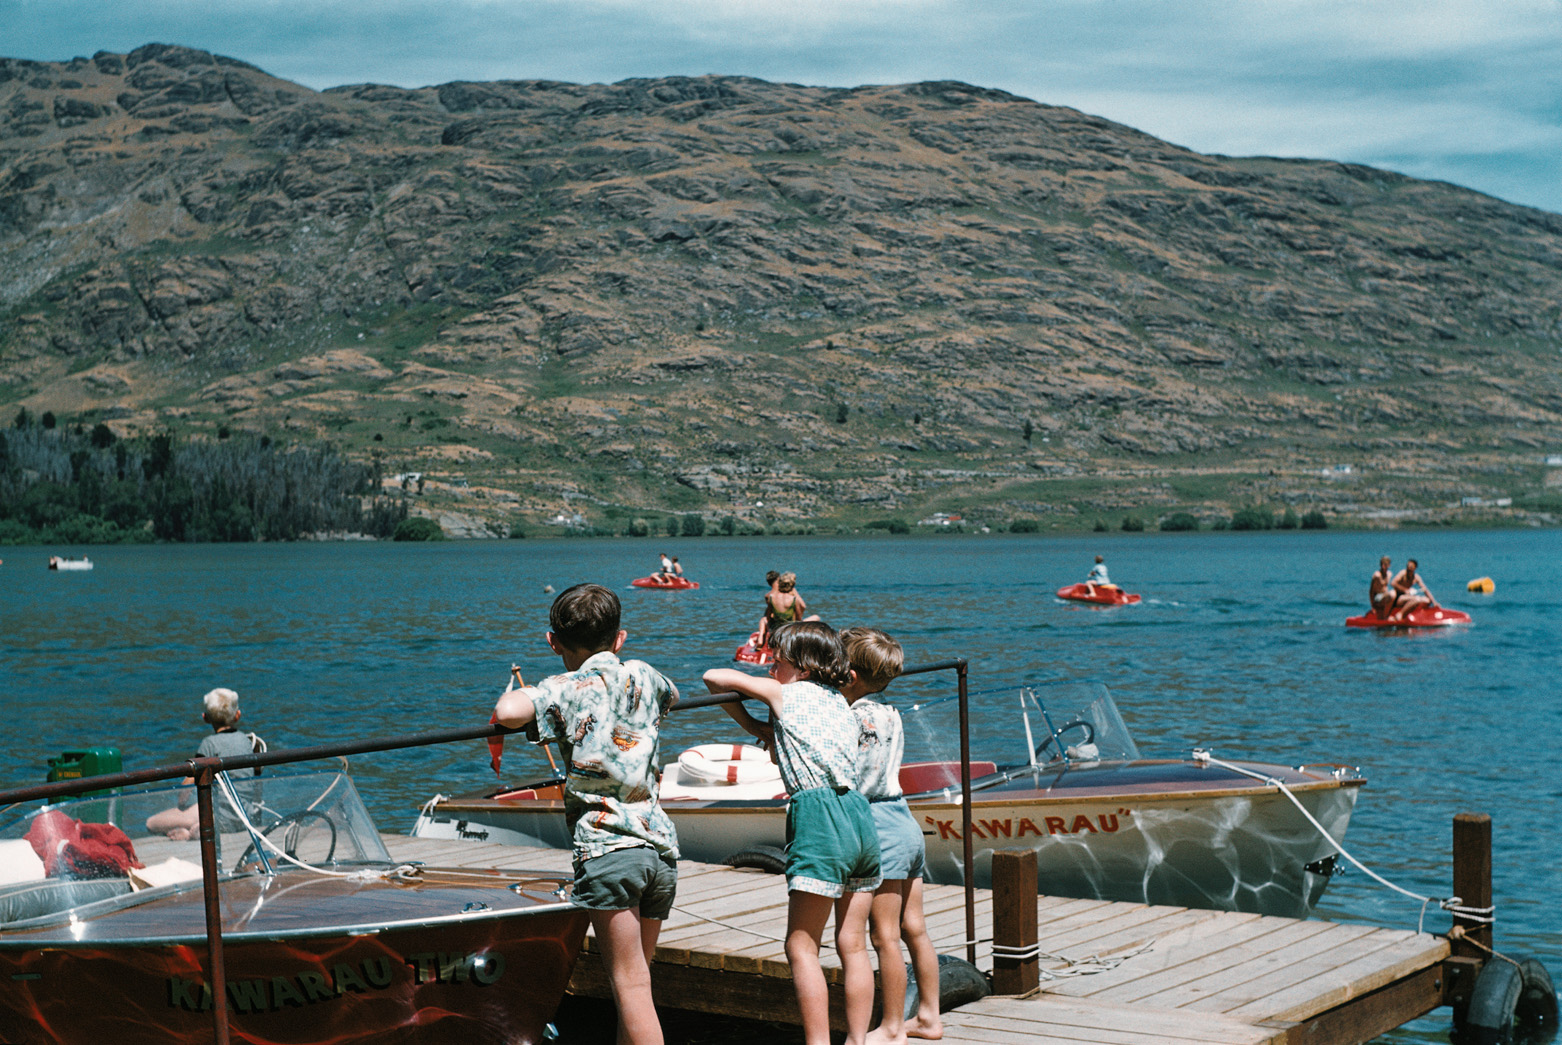 Early Days Jet boating with Kawarau Jet